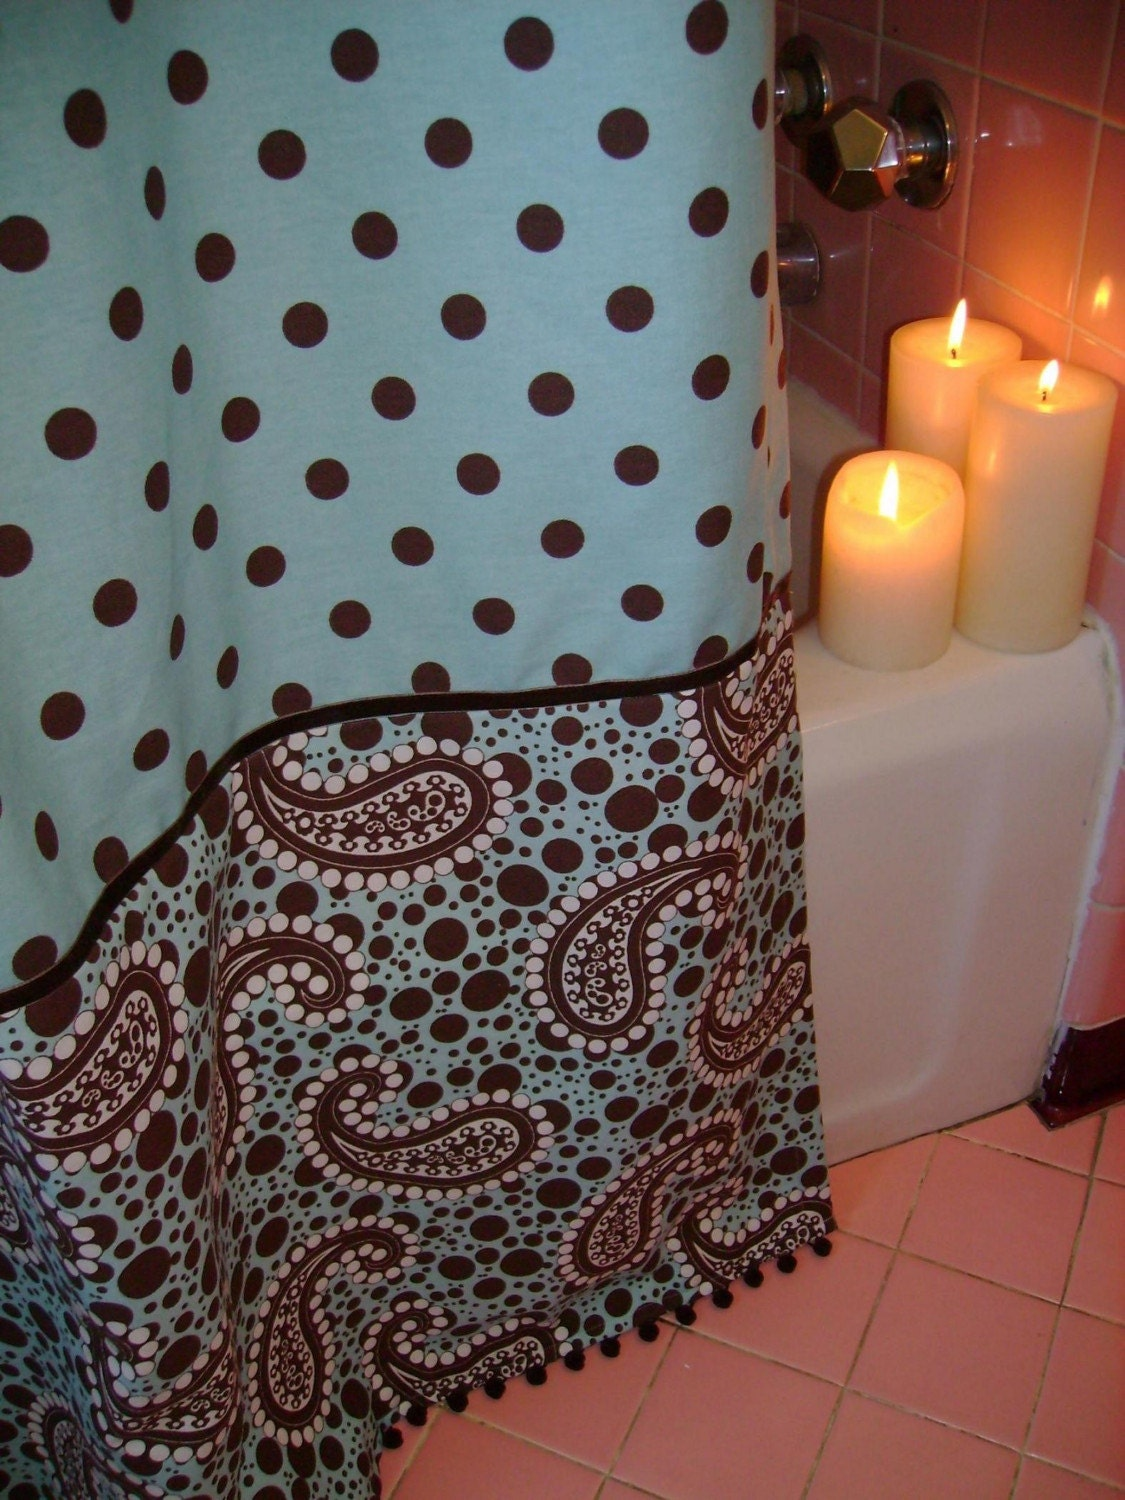 Aqua/Brown Polka Dot Shower Curtain